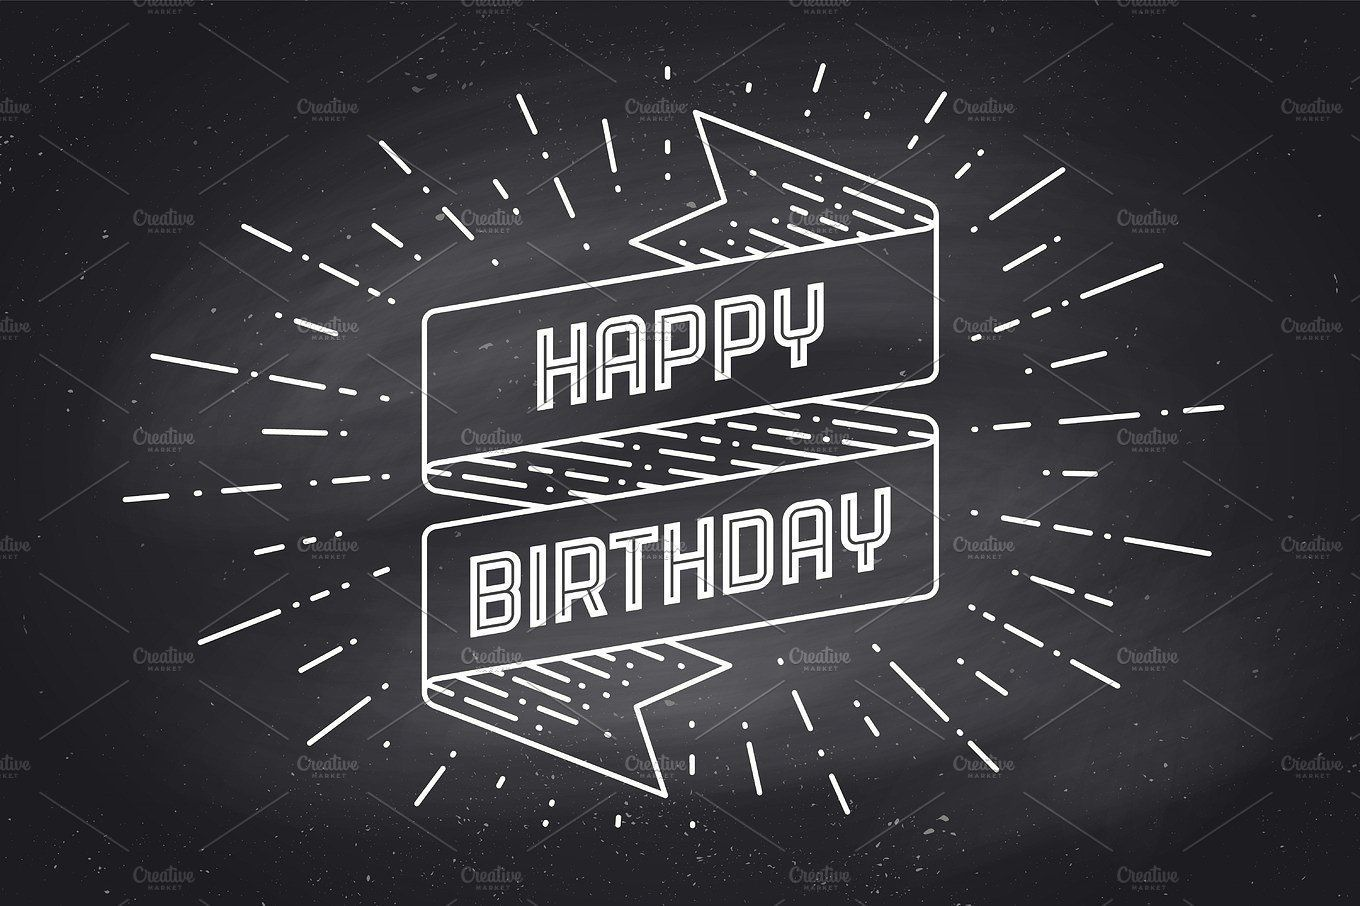 Are You Looking For Ideas For Happy Birthday Typography Browse Around This Site For Cool Birt Happy Birthday Typography Birthday Typography Happy Birthday Logo